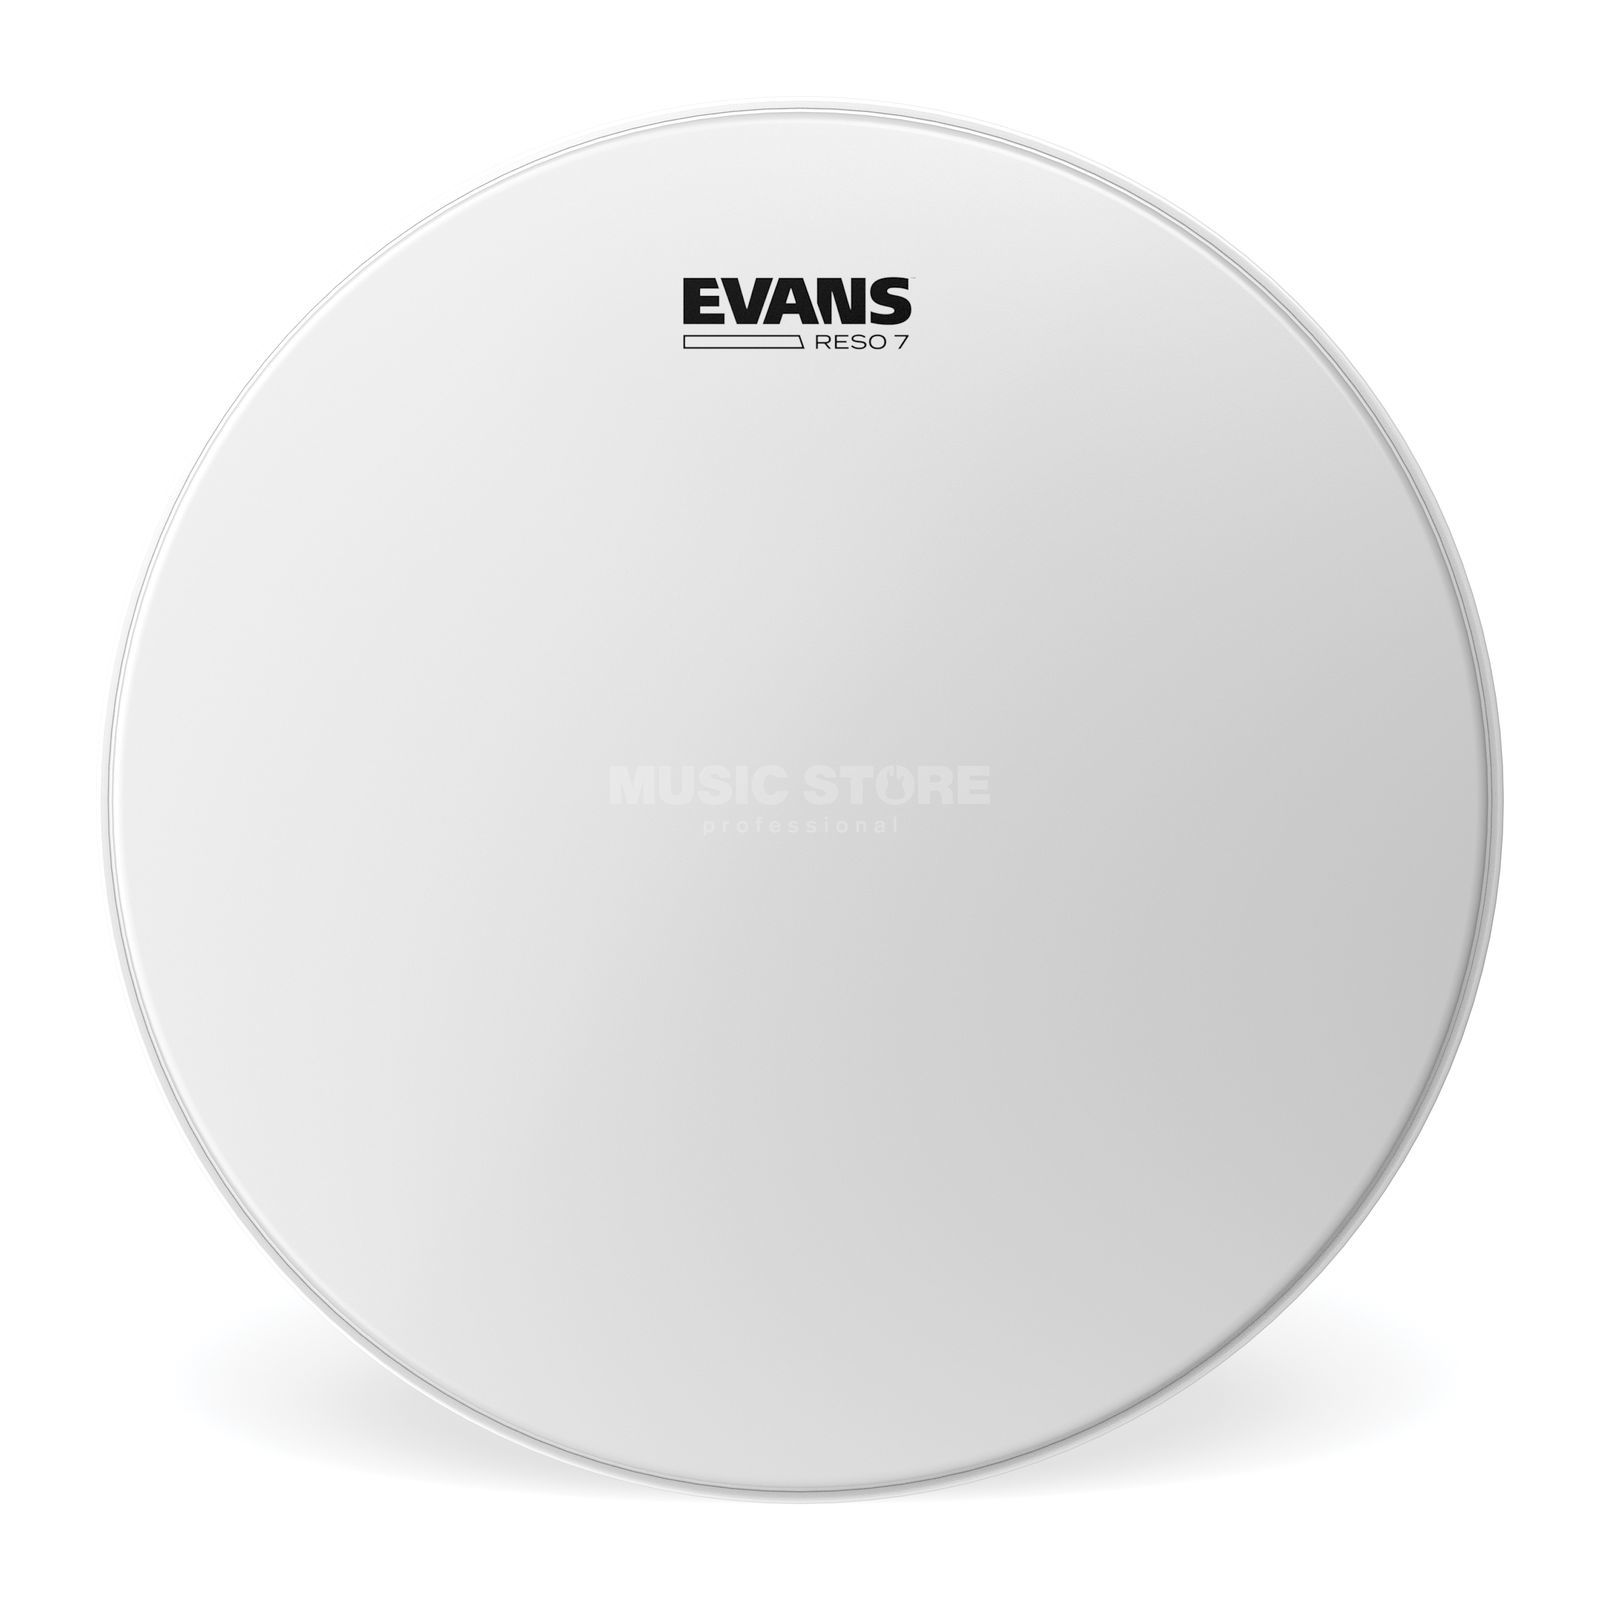 "Evans Reso 7 Coated 12"", B12RES7, Tom Reso Product Image"